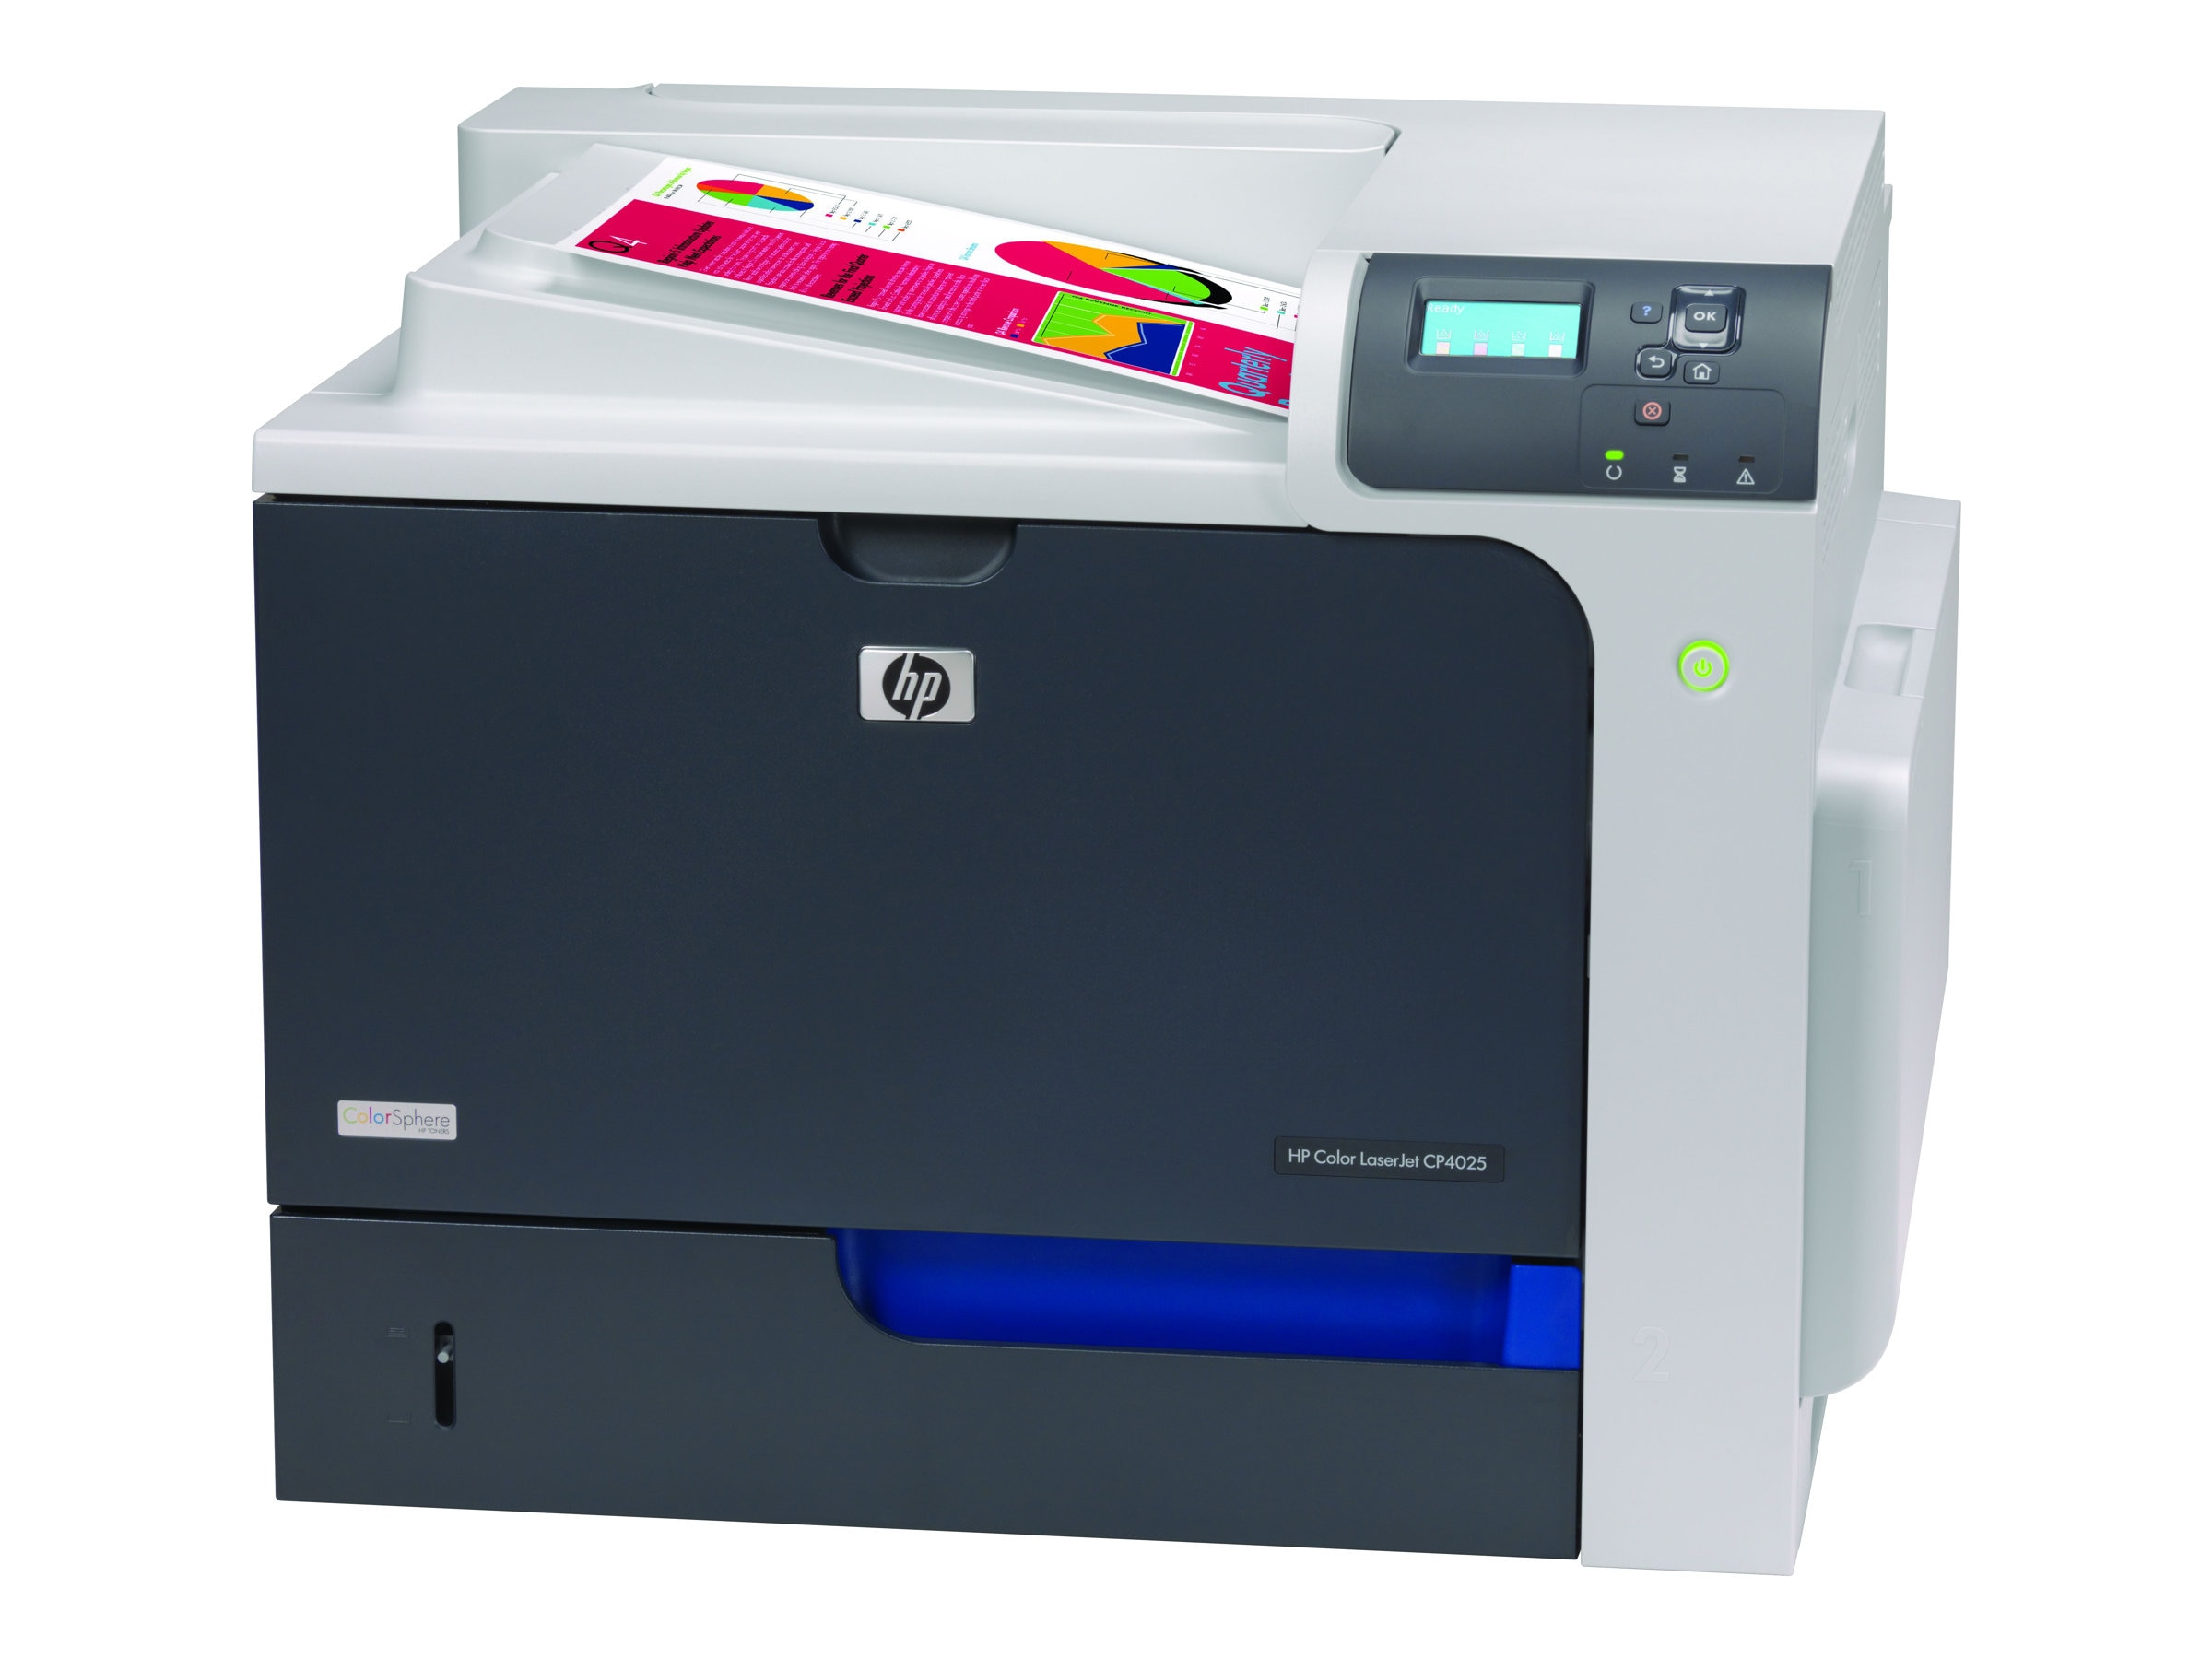 HP Color LaserJet Enterprise CP4025dn Printer (VPA)